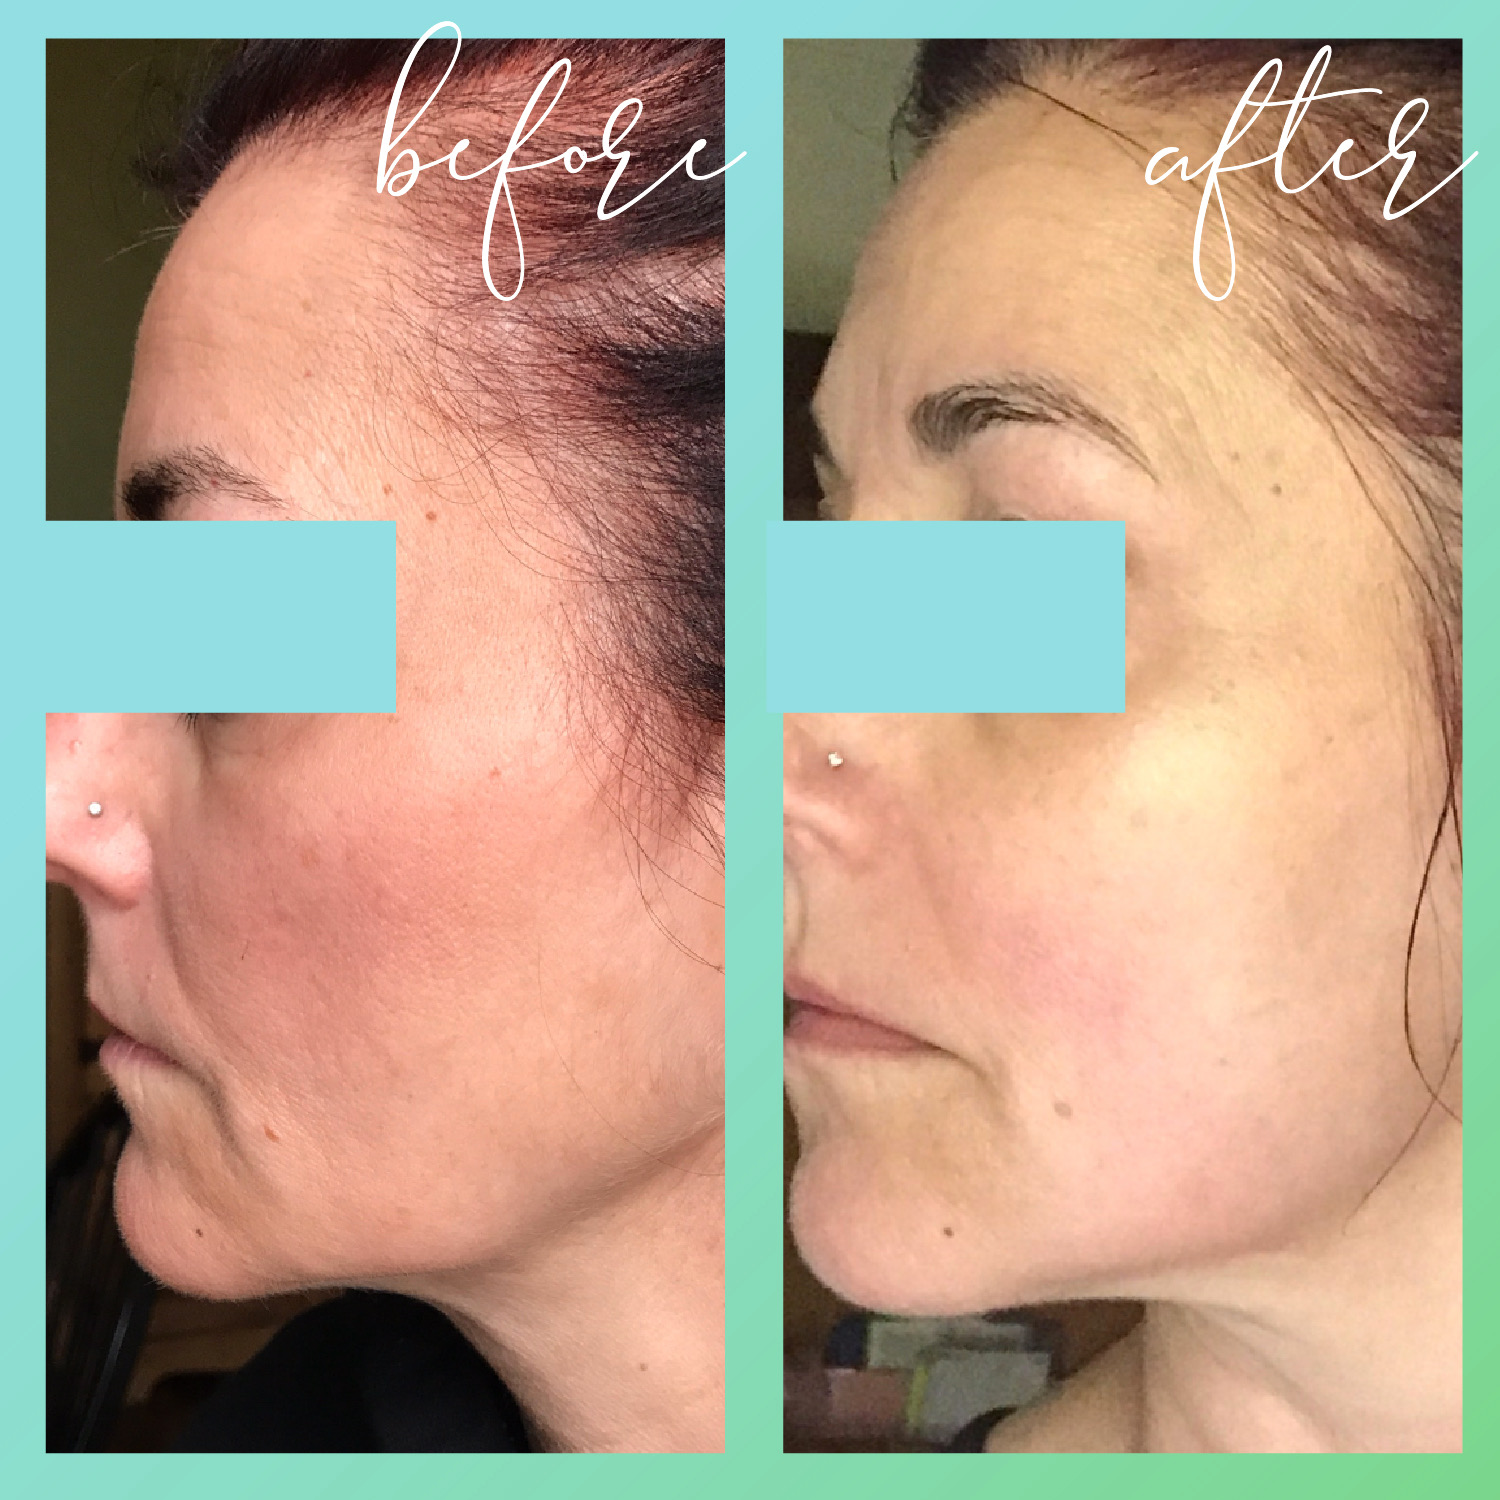 Before and After Microcurrent Facelift